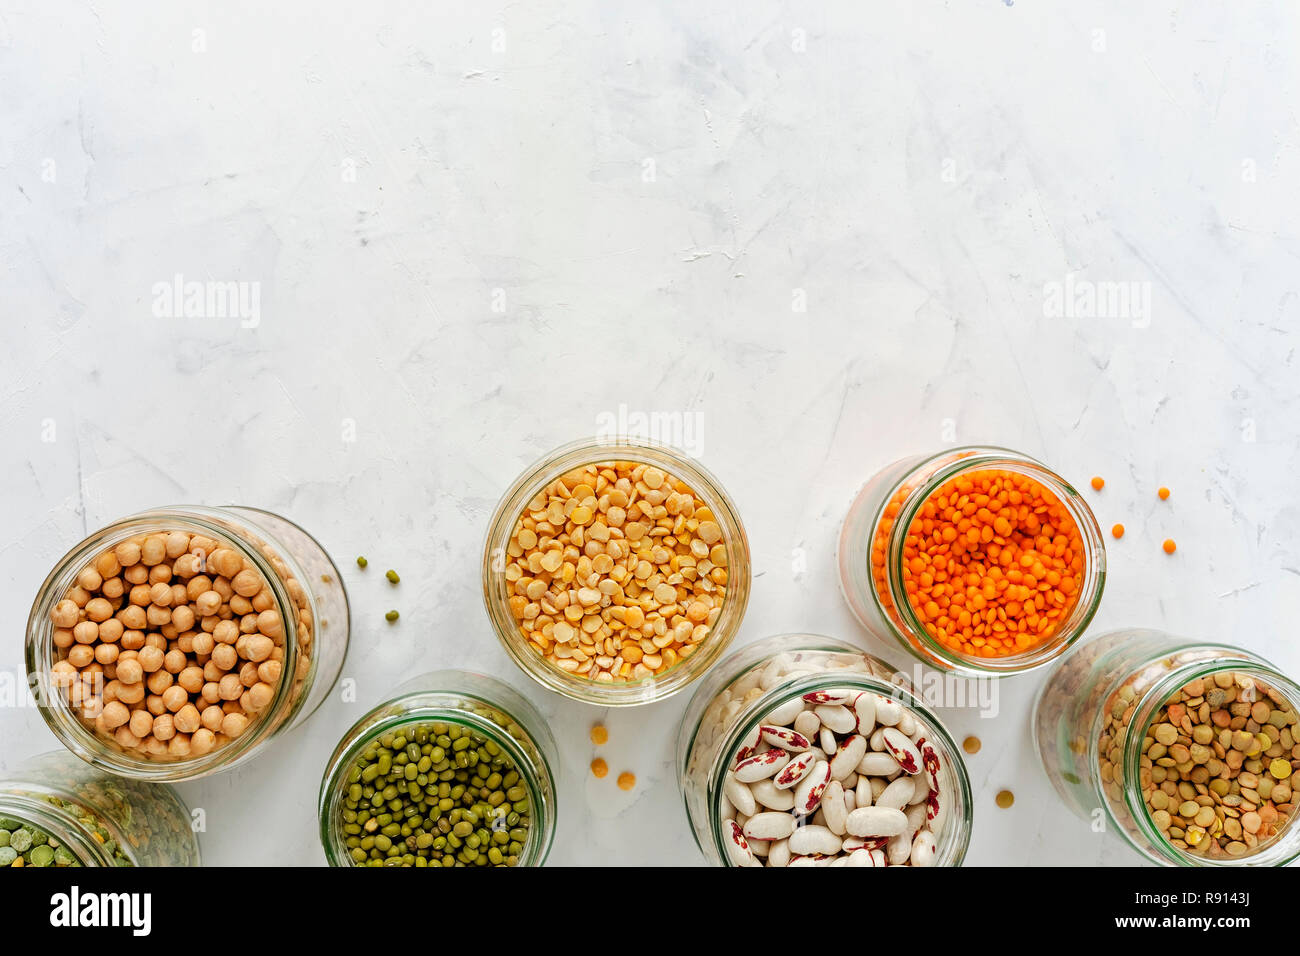 Open glass jars full of assorted dried legumes with mung beans, beans, lentils and peas over a white background in a healthy diet and nutrition concep Stock Photo